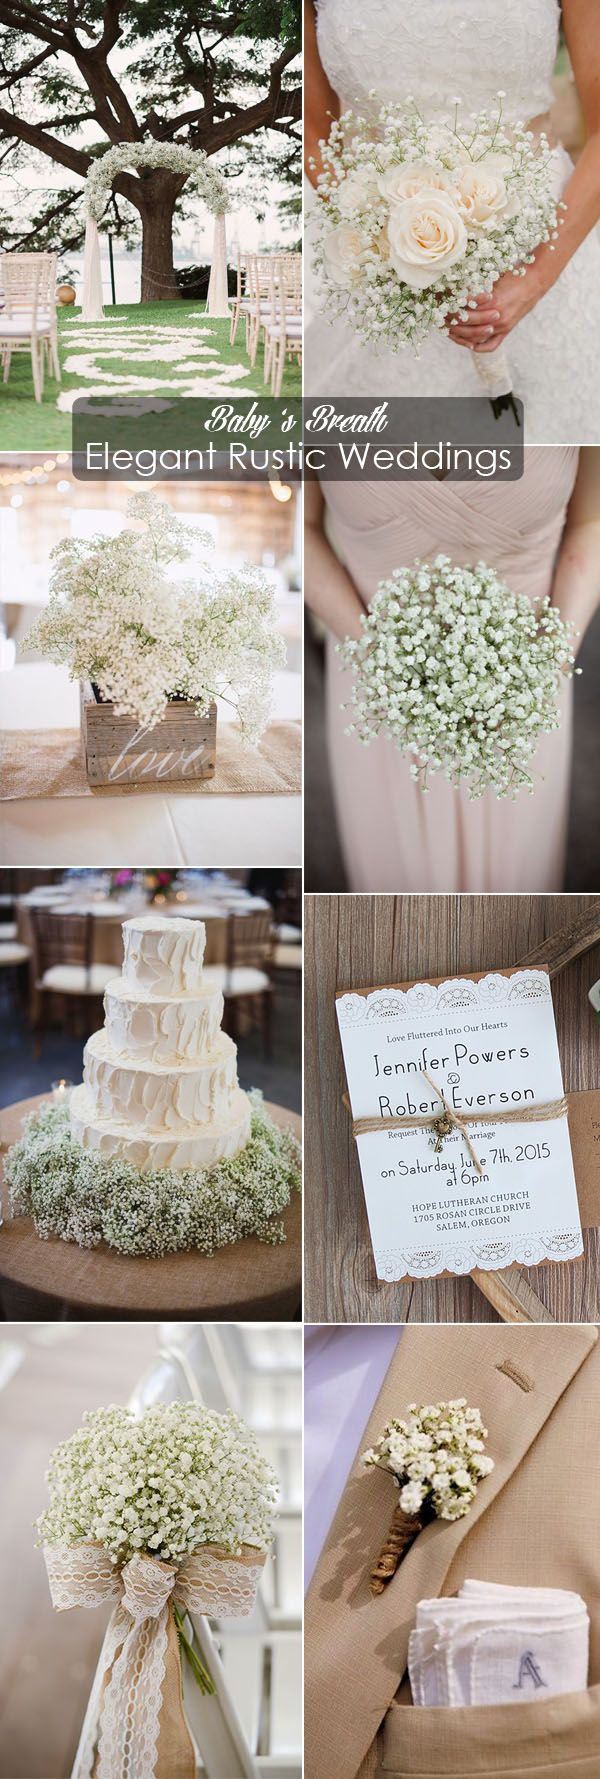 Wedding decorations with mums november 2018 Best  Wedding ideas on Pinterest  Wedding ideas Wedding stuff